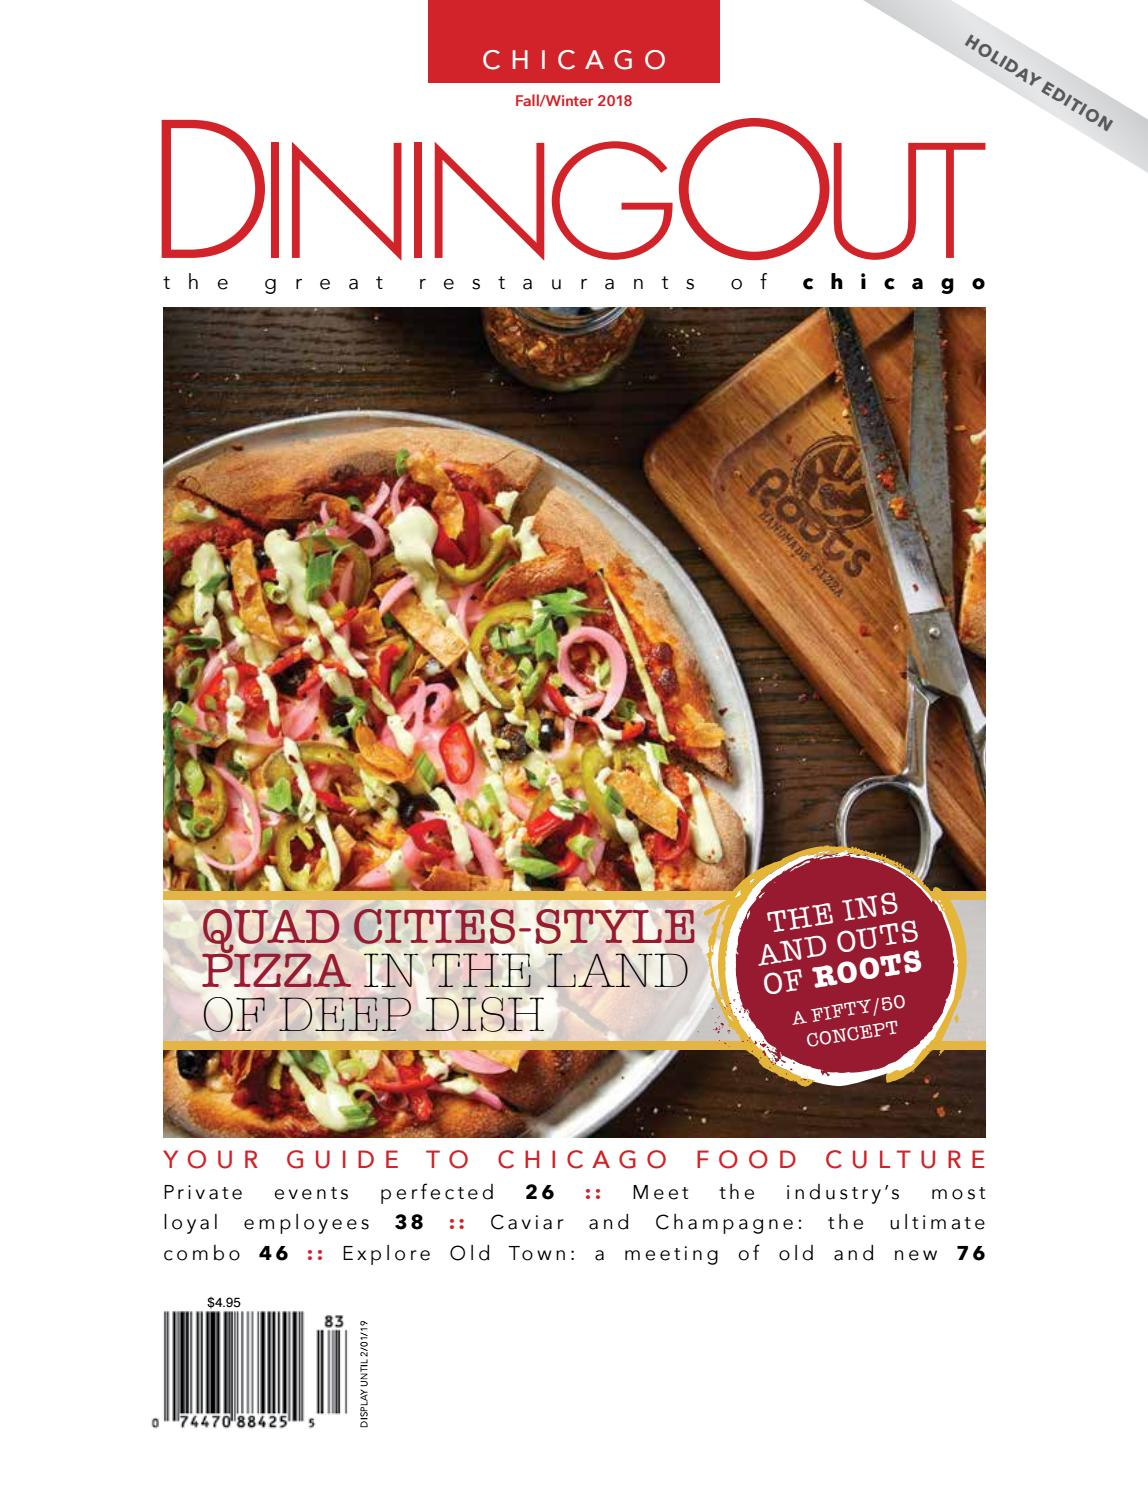 Tagliere Tiers Diningout Chicago Issue 44